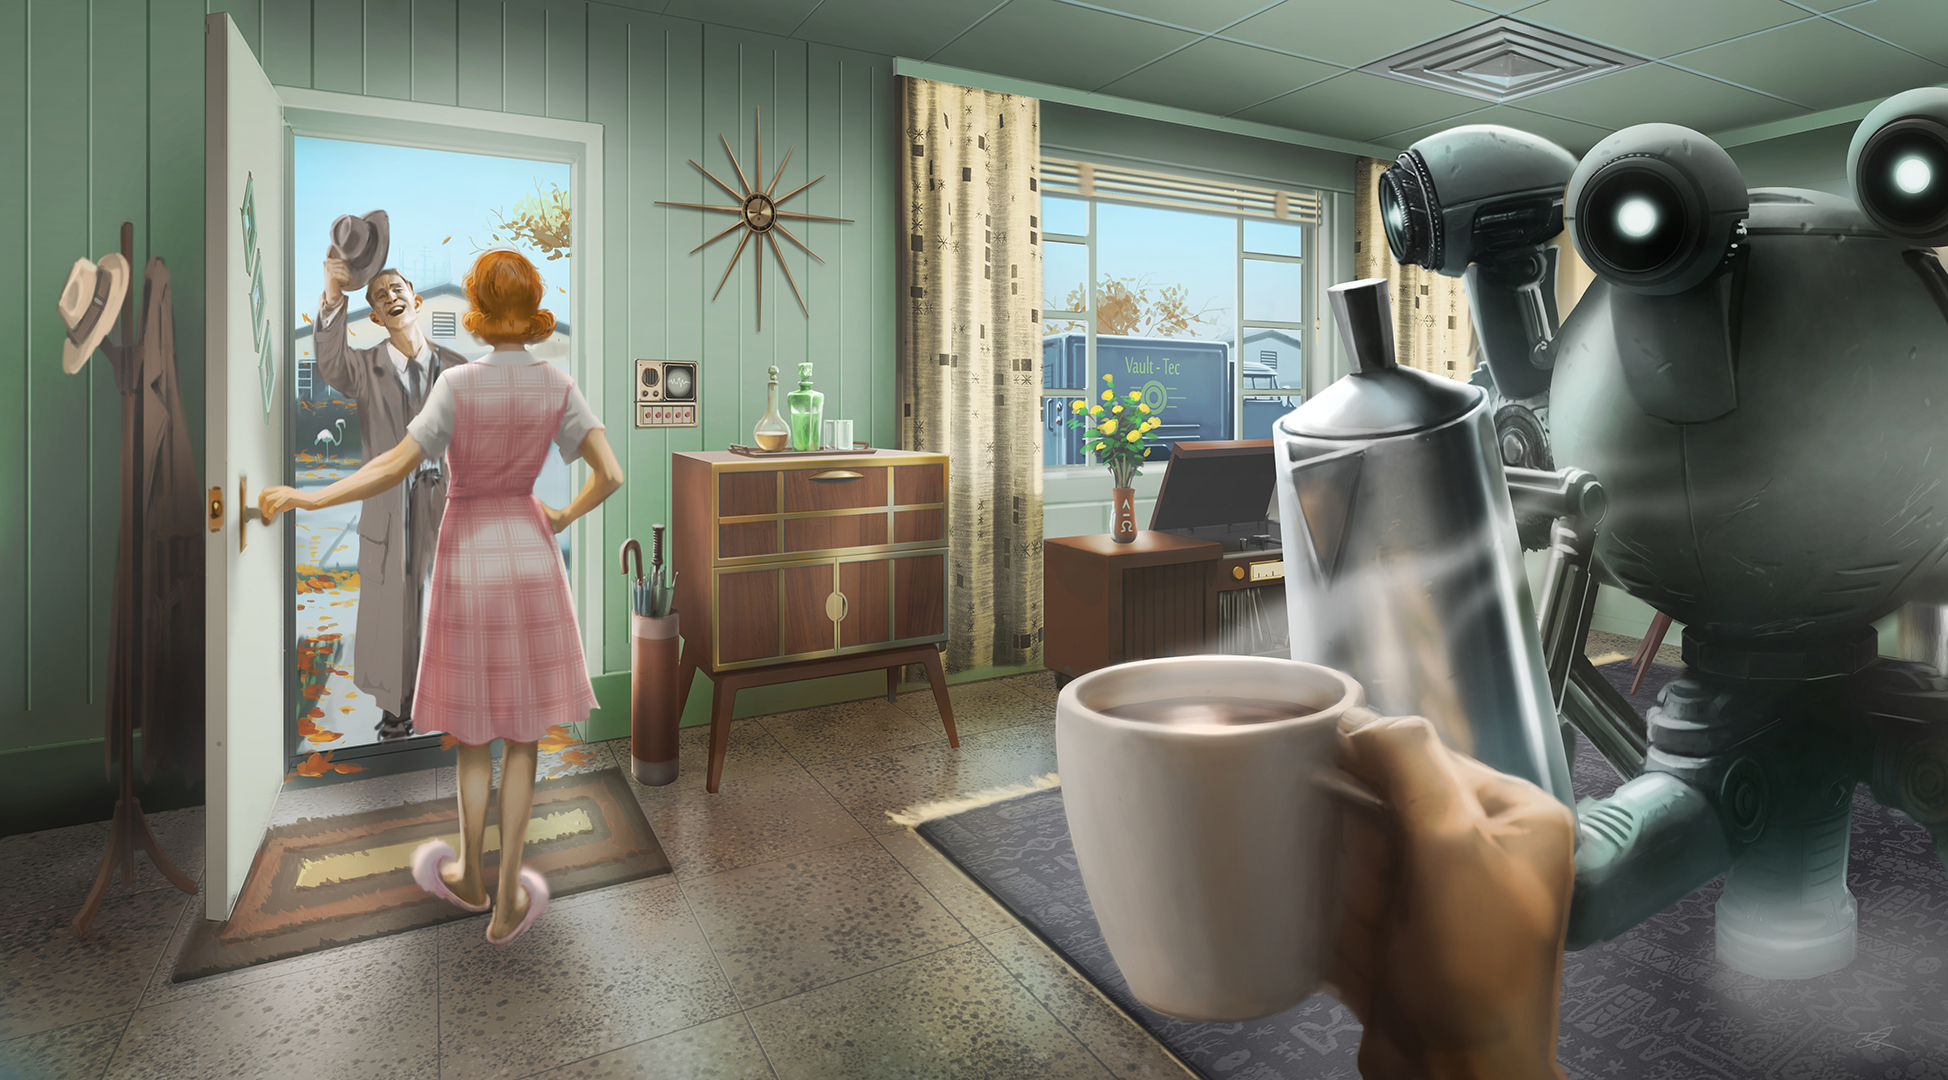 14 Unreal Games That Are Just Like Fallout 4 (But Better)